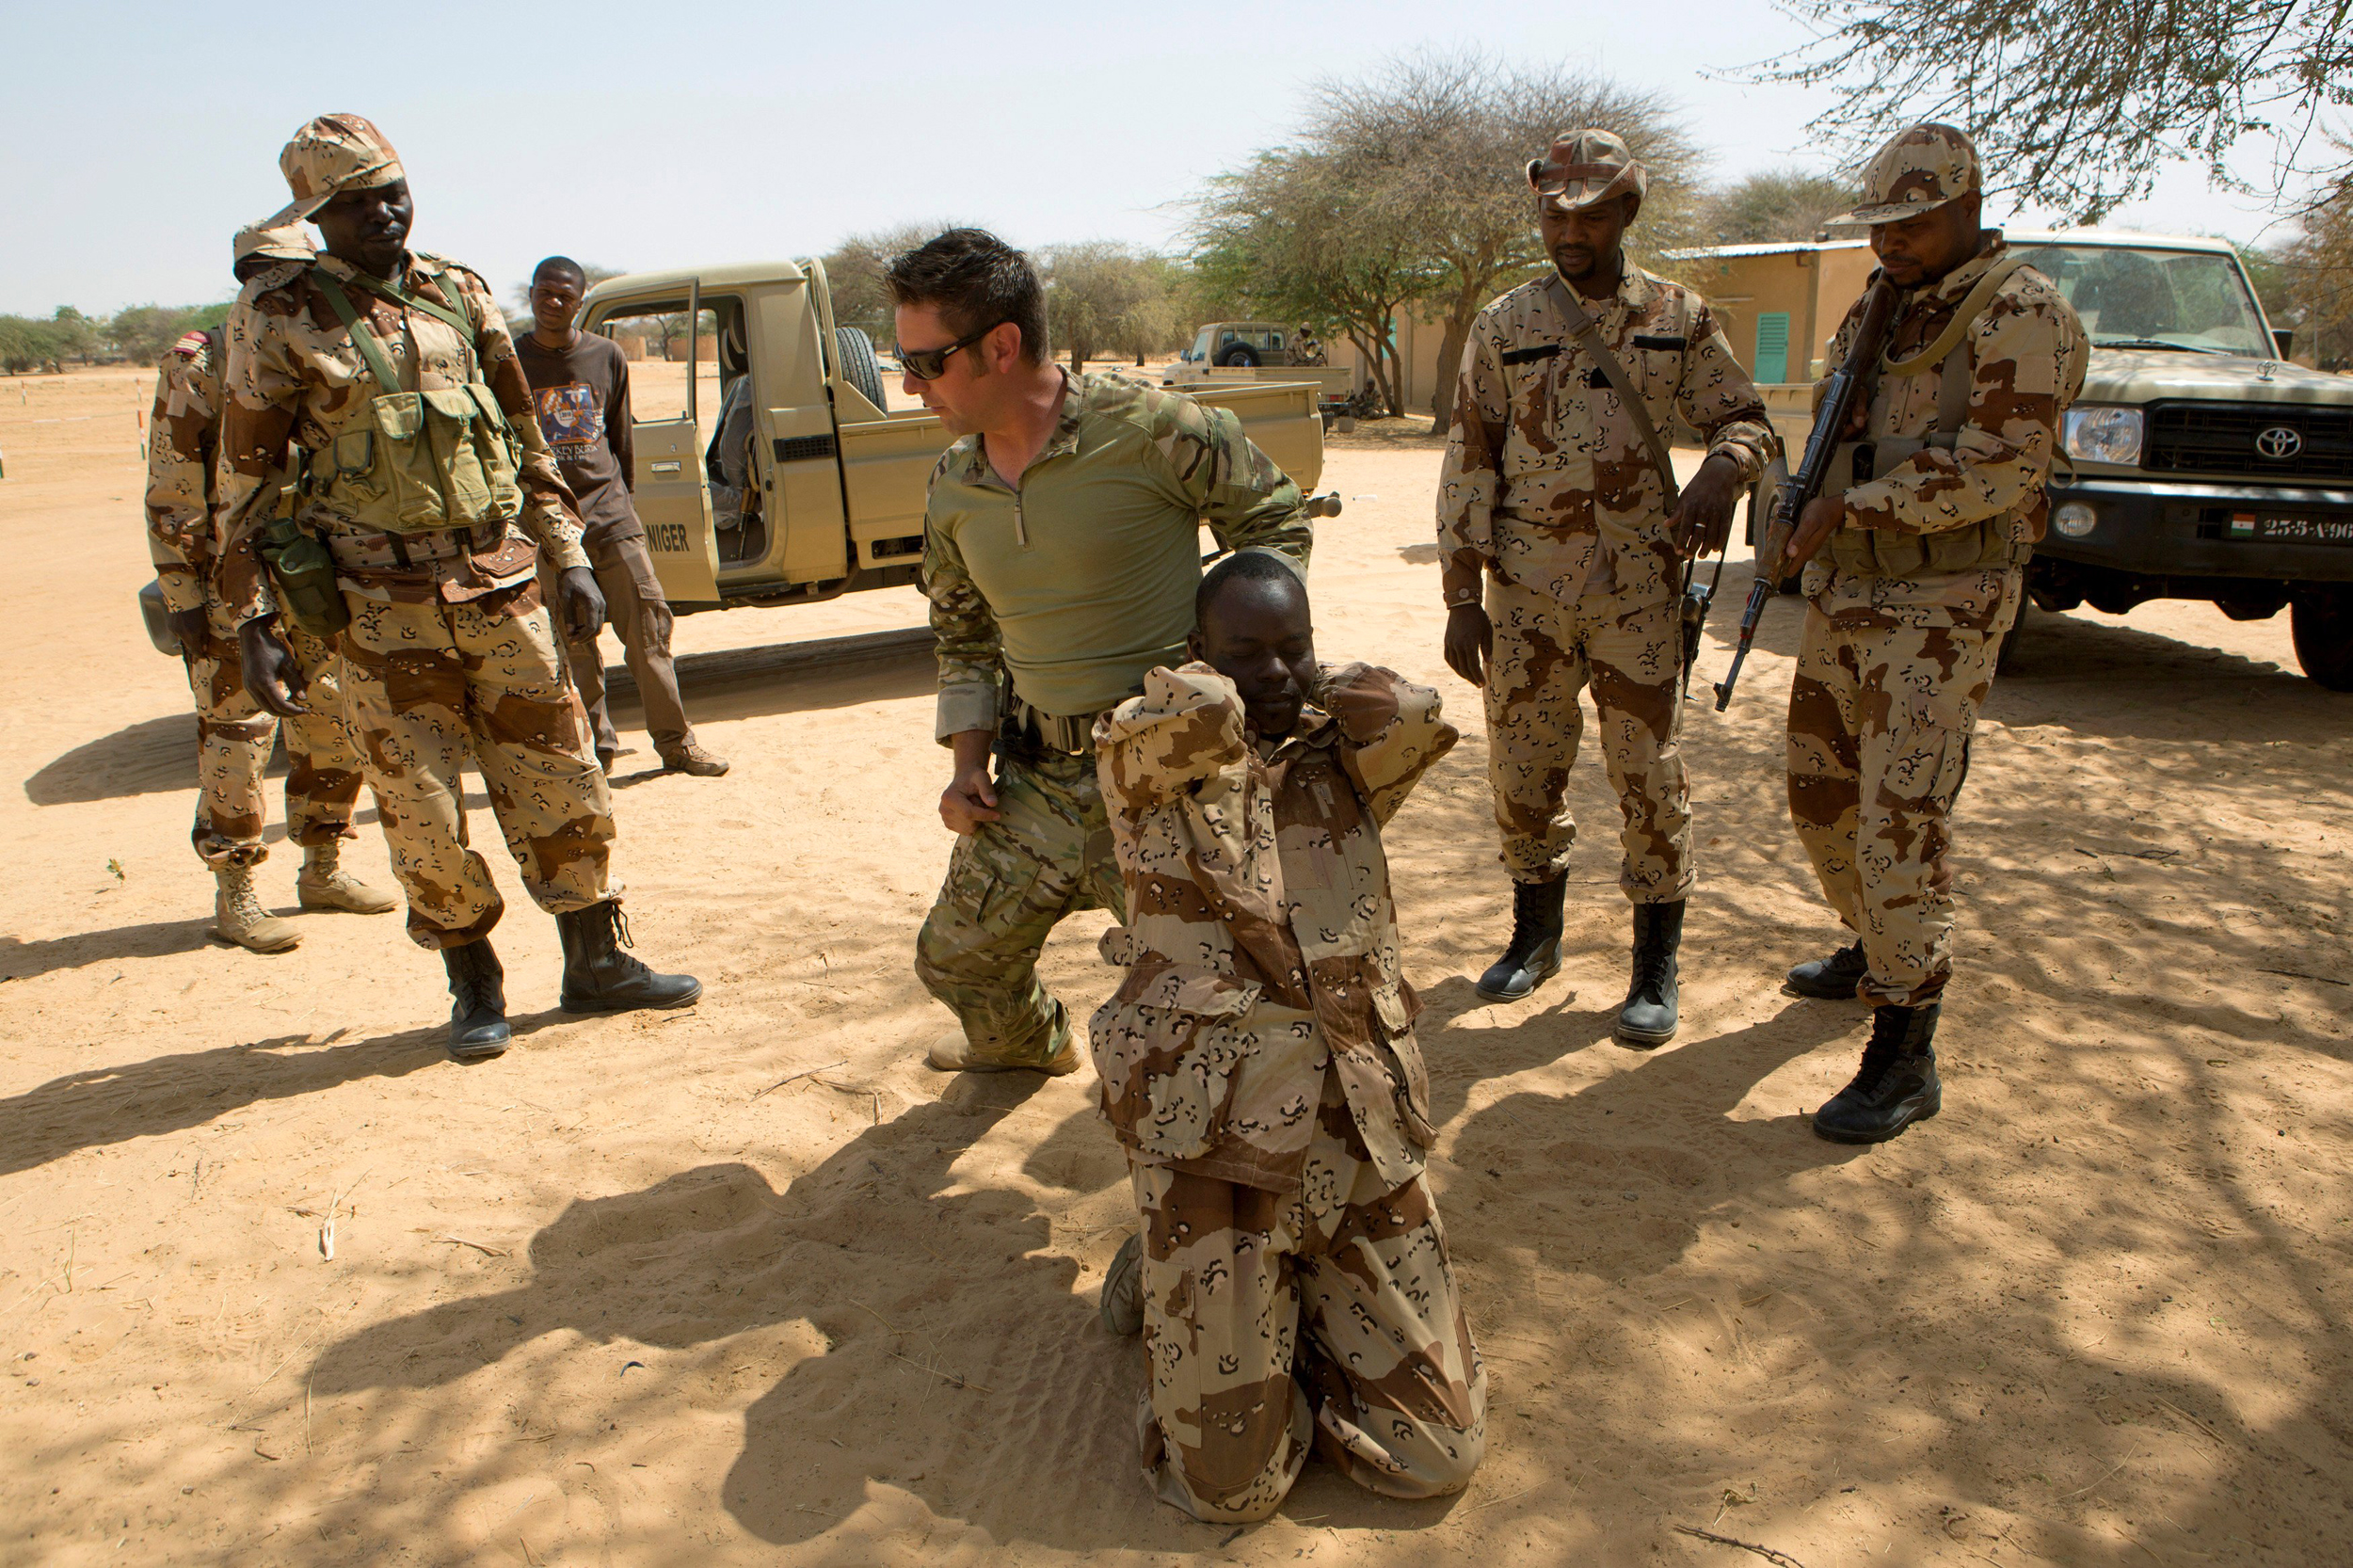 Image: A U.S. special forces soldier demonstrates how to detain a suspect during Flintlock 2014, a U.S.-led international training mission for African militaries, in Diffa, Niger March 4, 2014.